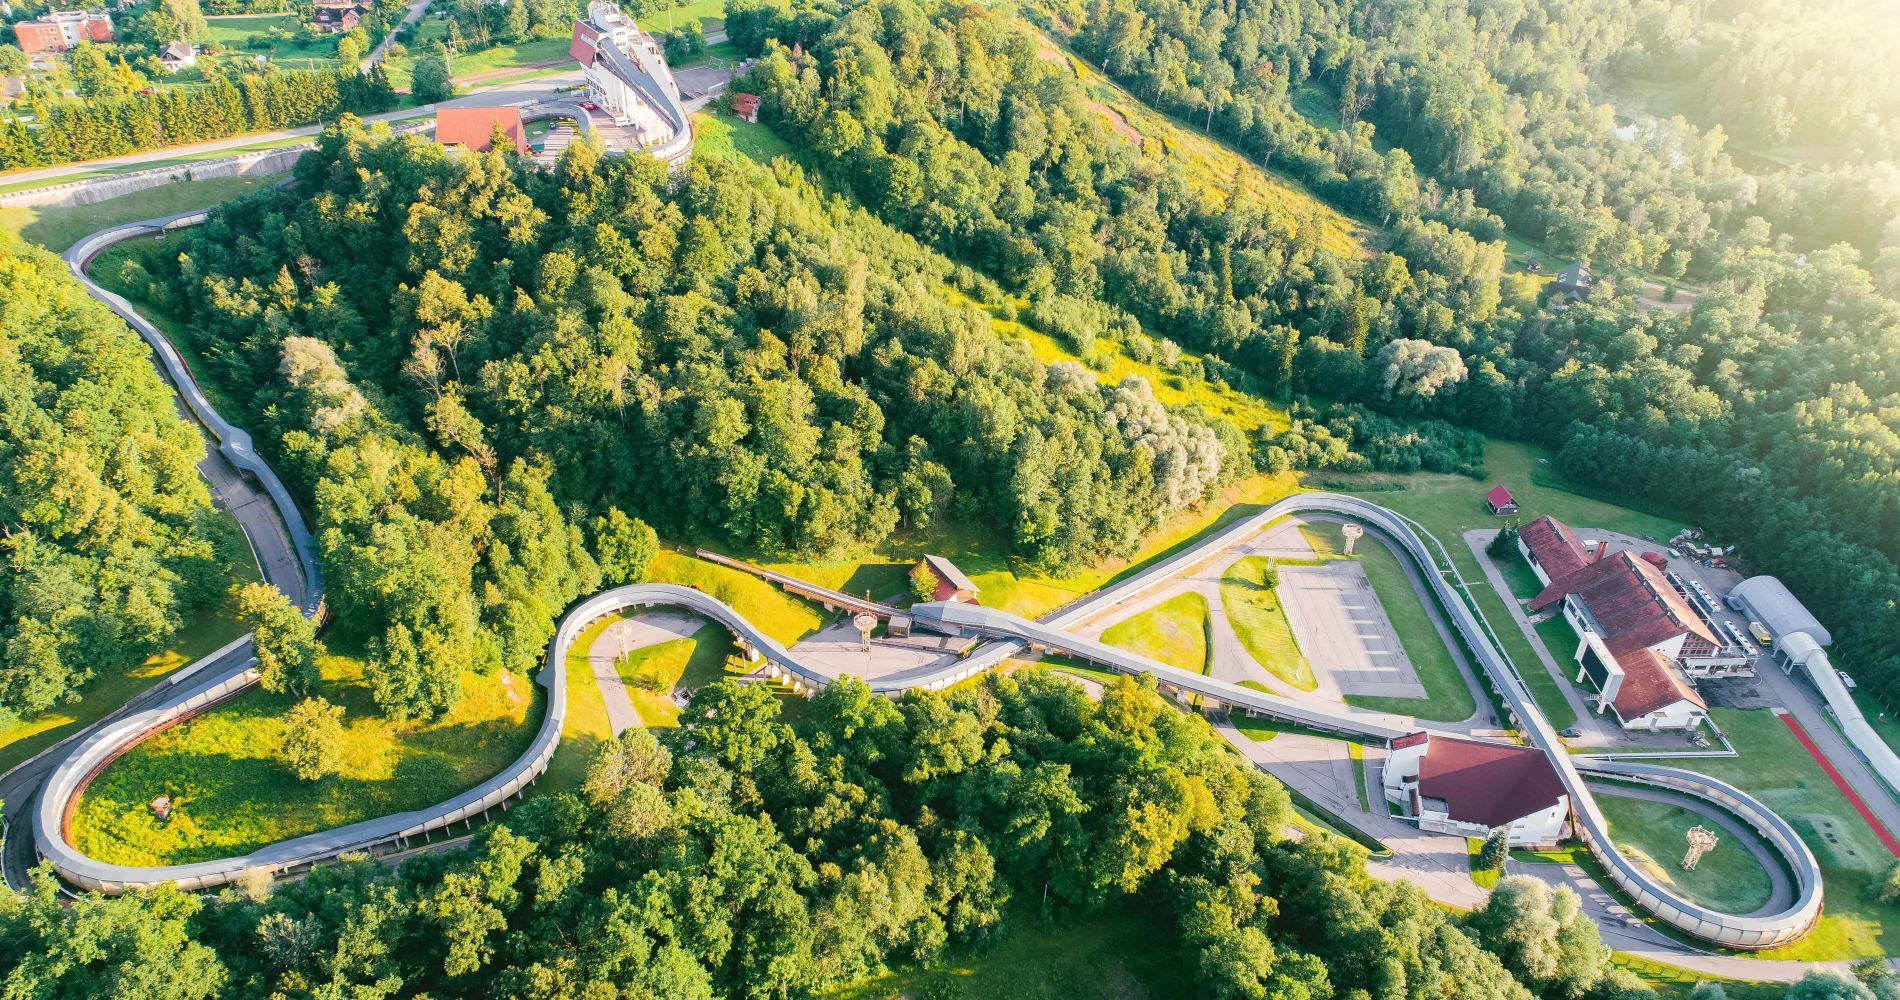 Breathtaking Bobsleigh Ride For Two in Latvia